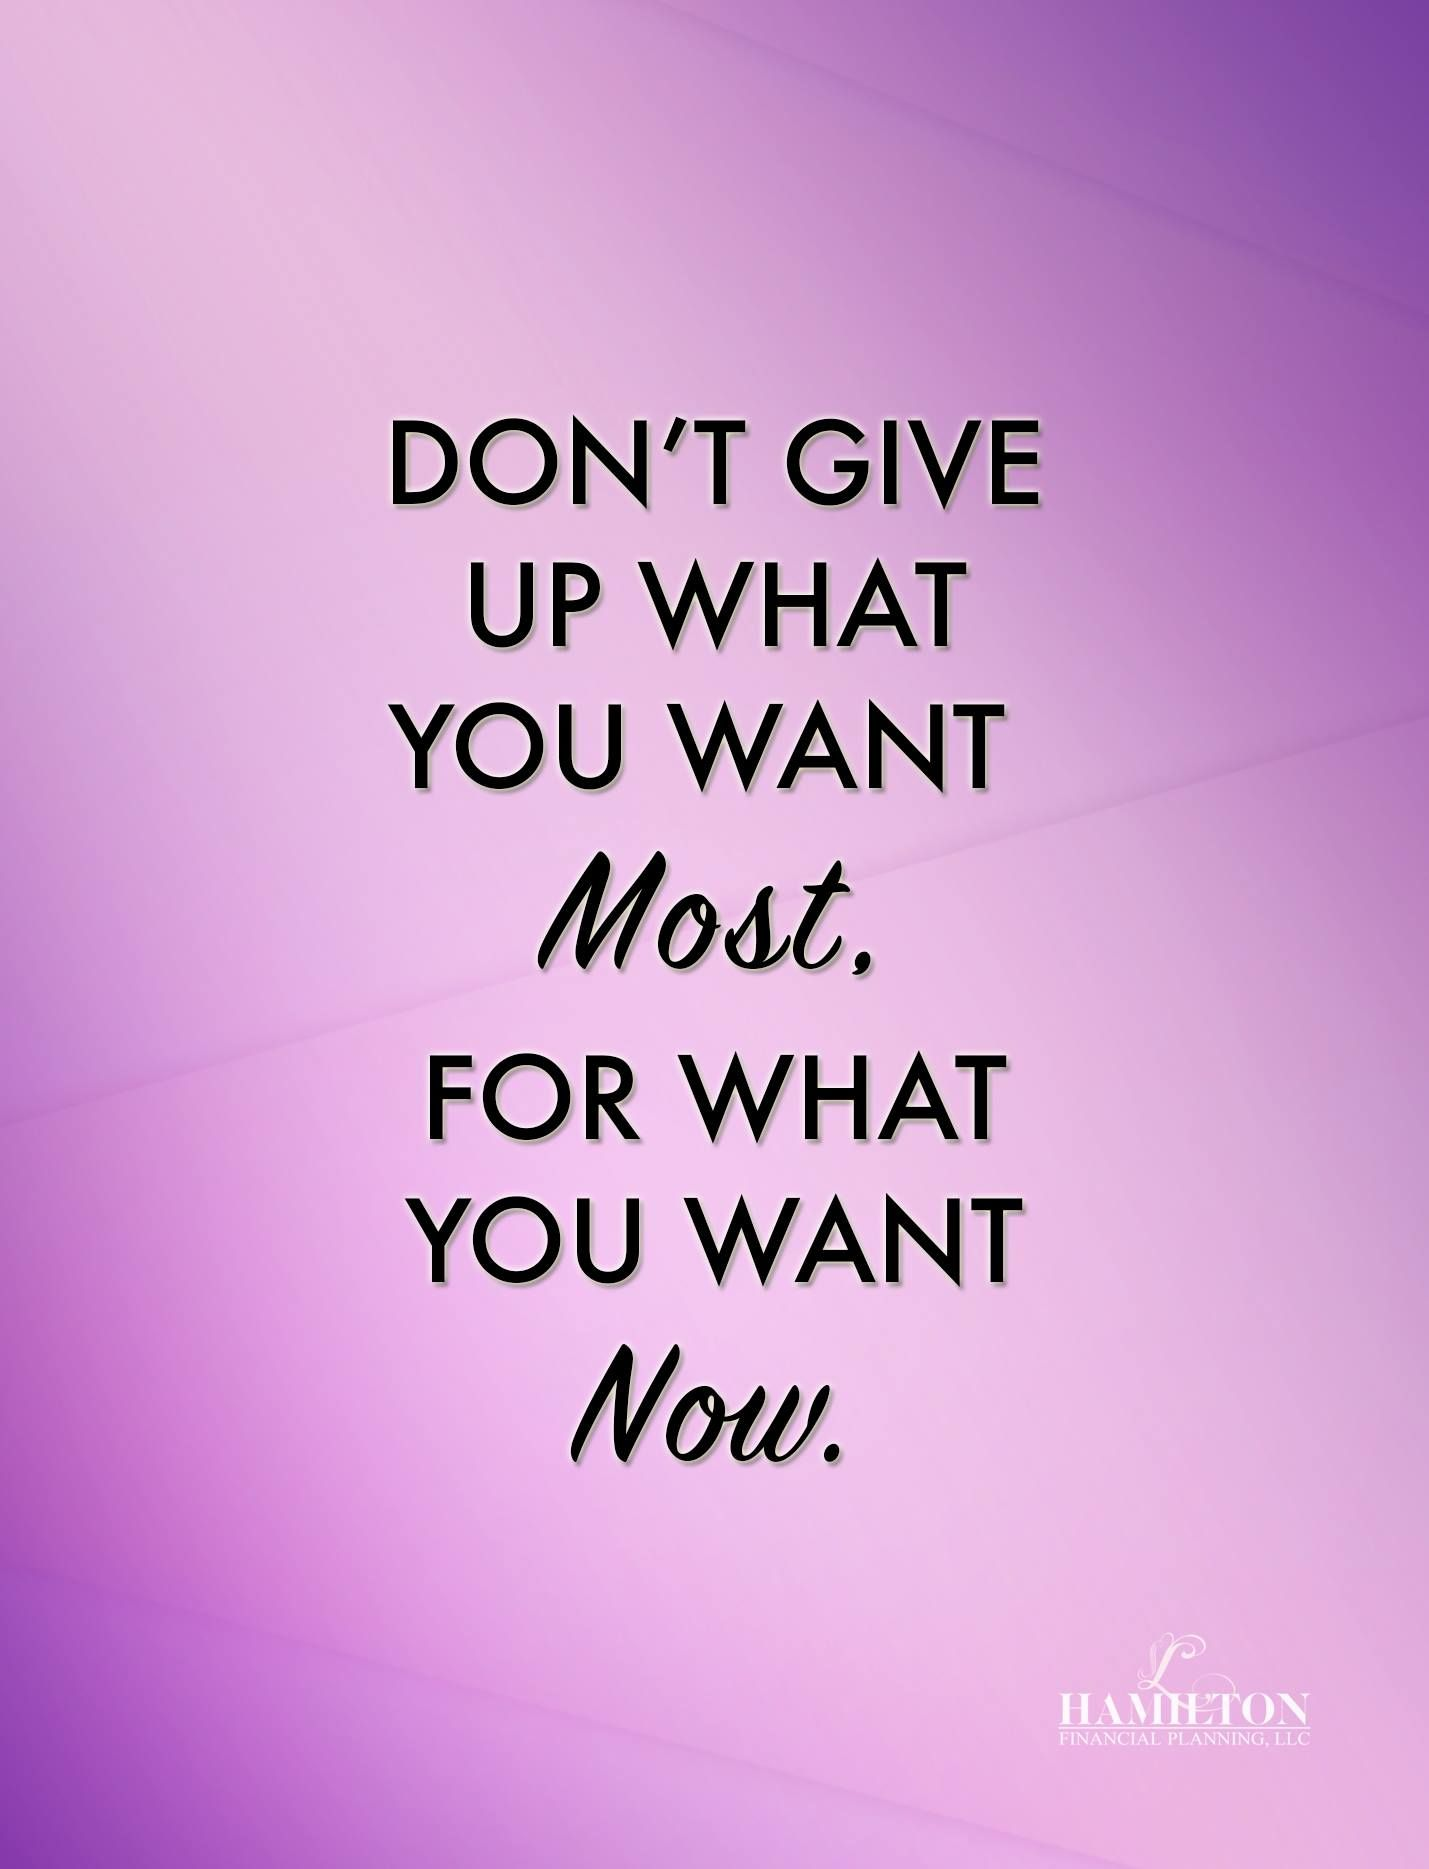 Inspirational Retirement Quotes Weekly Motivational And Inspirational Quotes To Encourage Saving